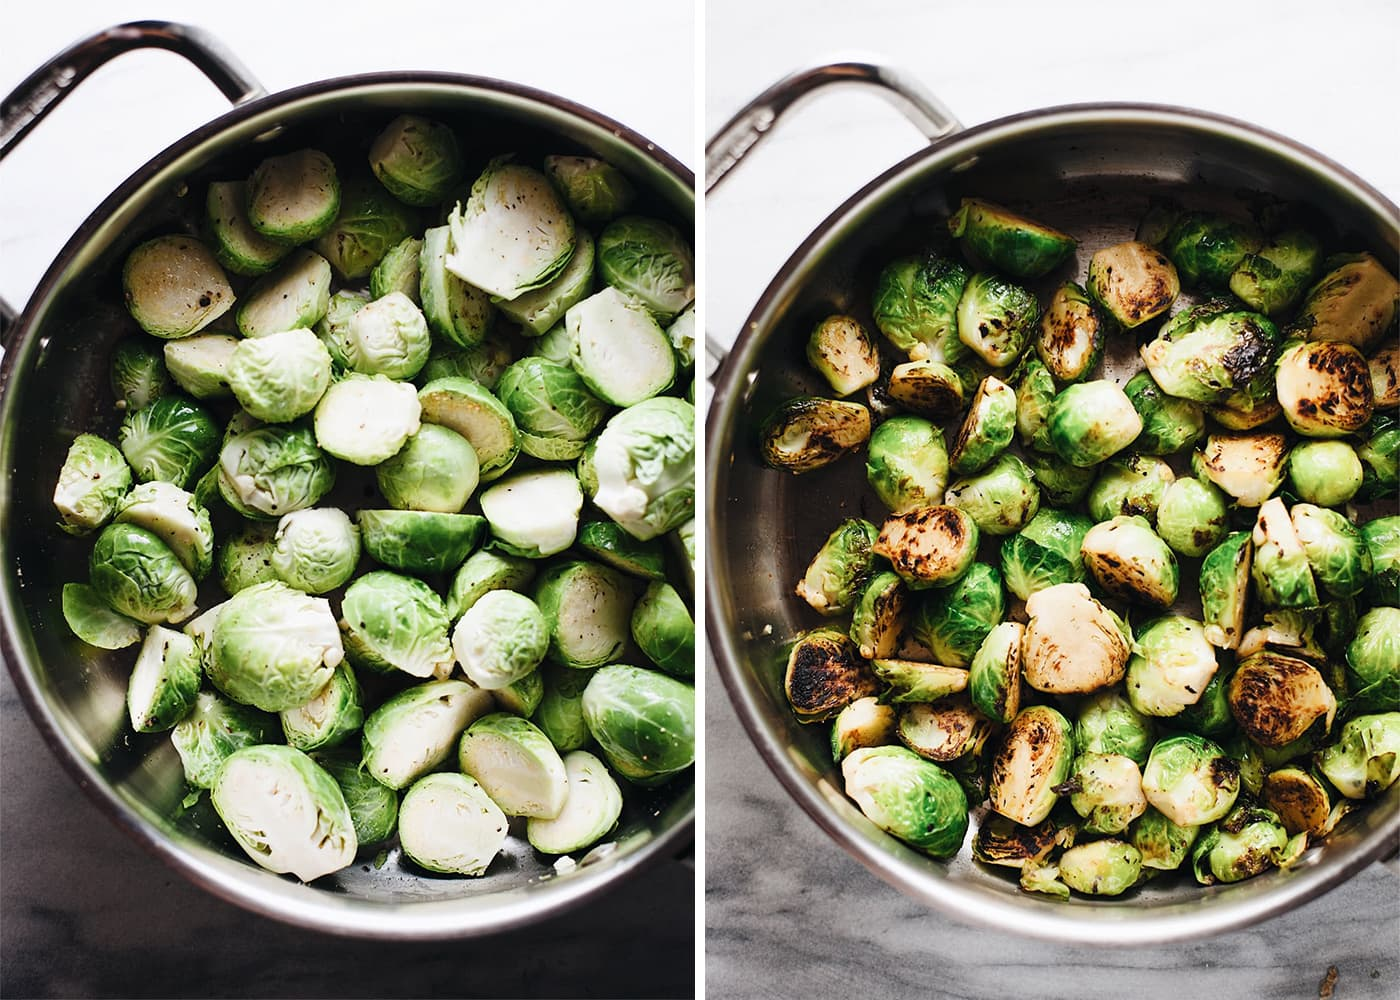 Sauteed brussels sprouts in a stainless steel pan.